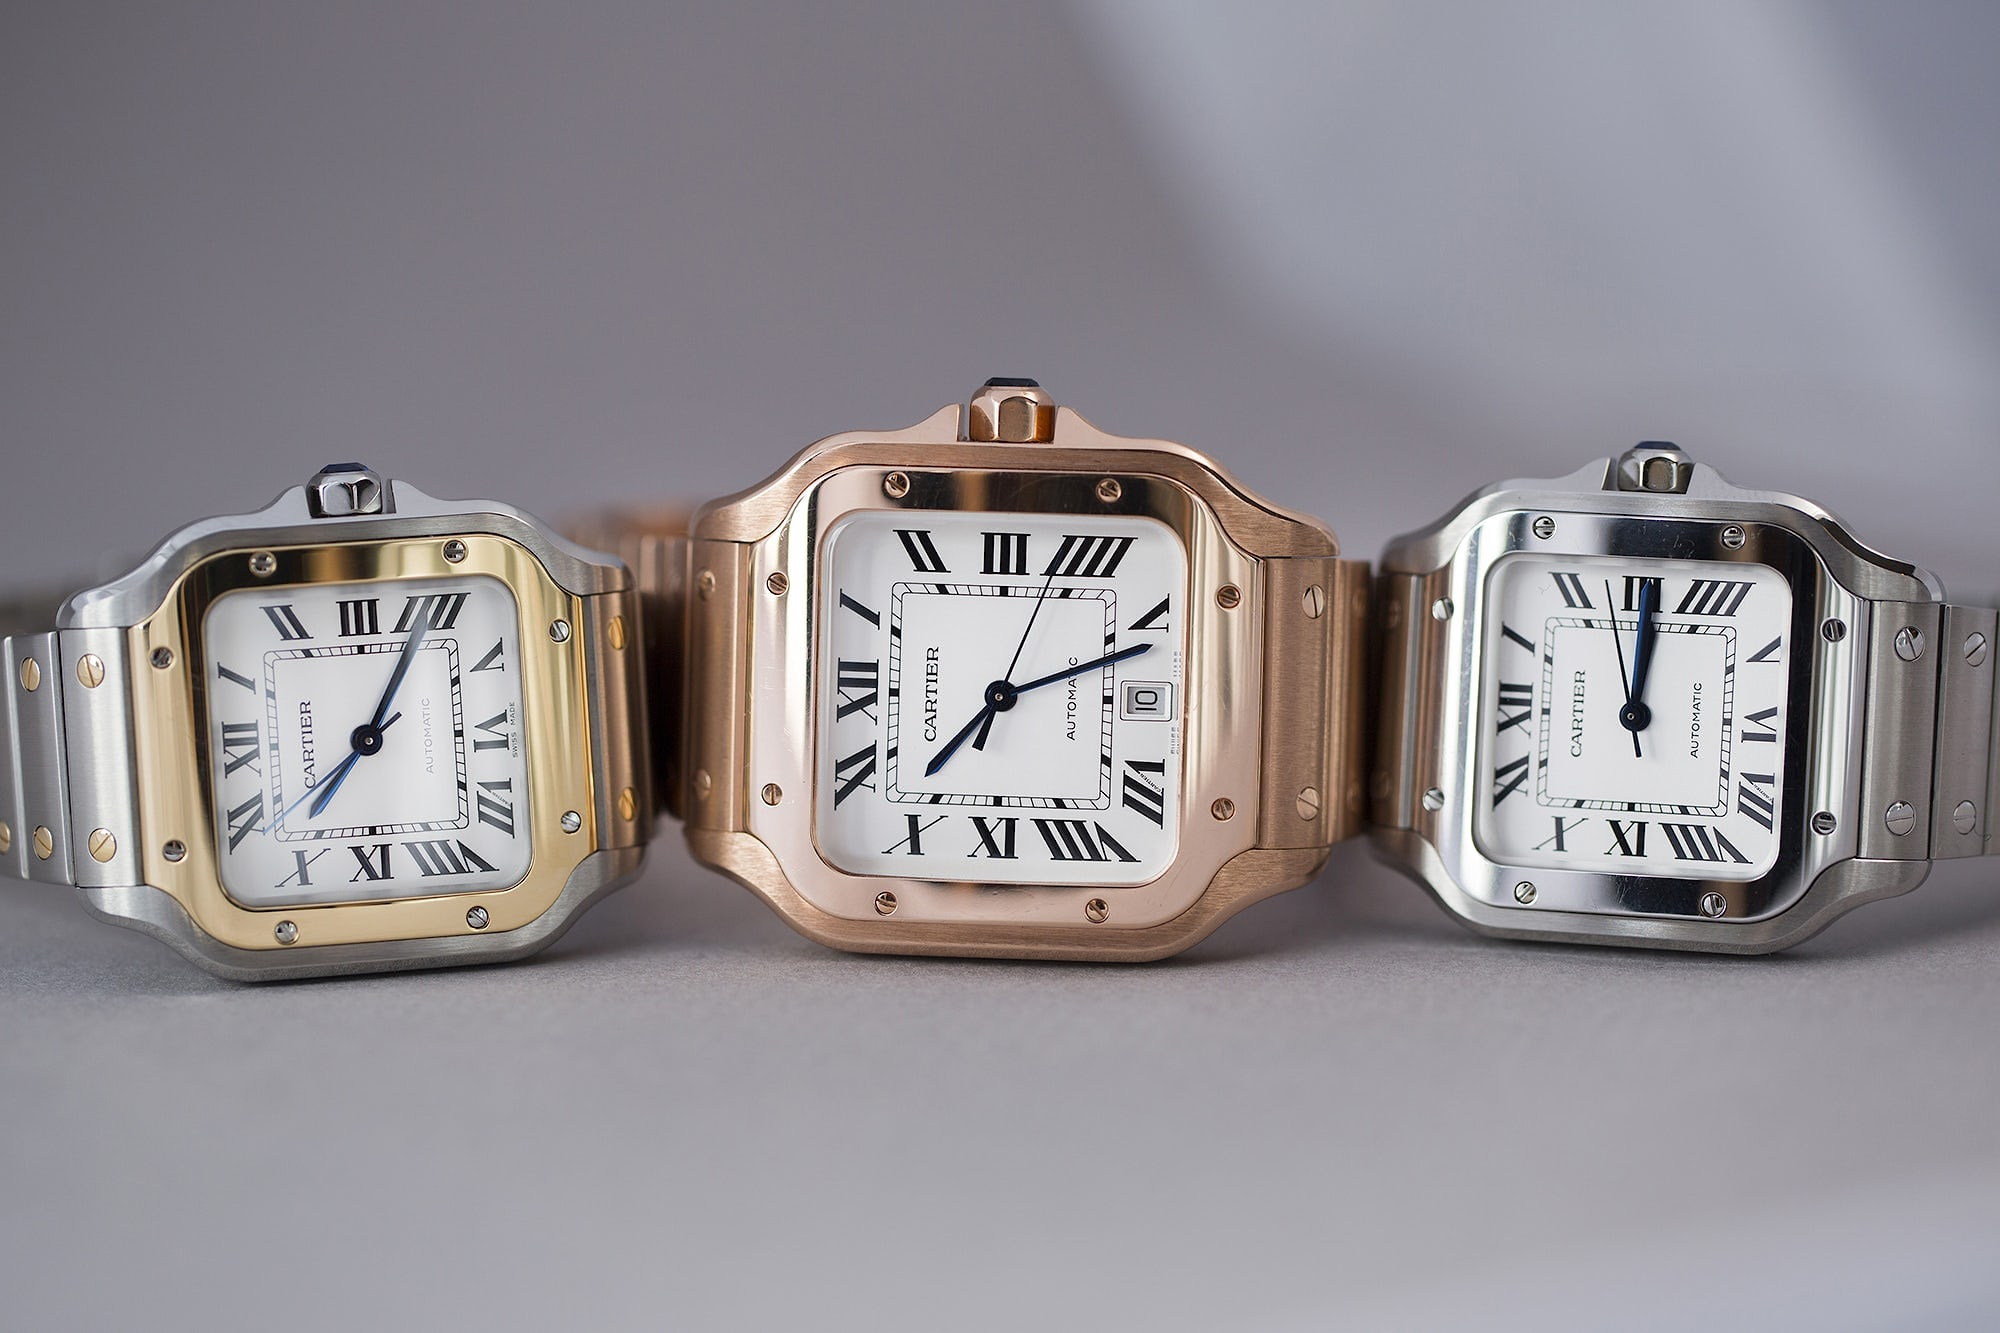 678c1736c84 Business News Richemont Retools For A Changing 21st Century Marketplace